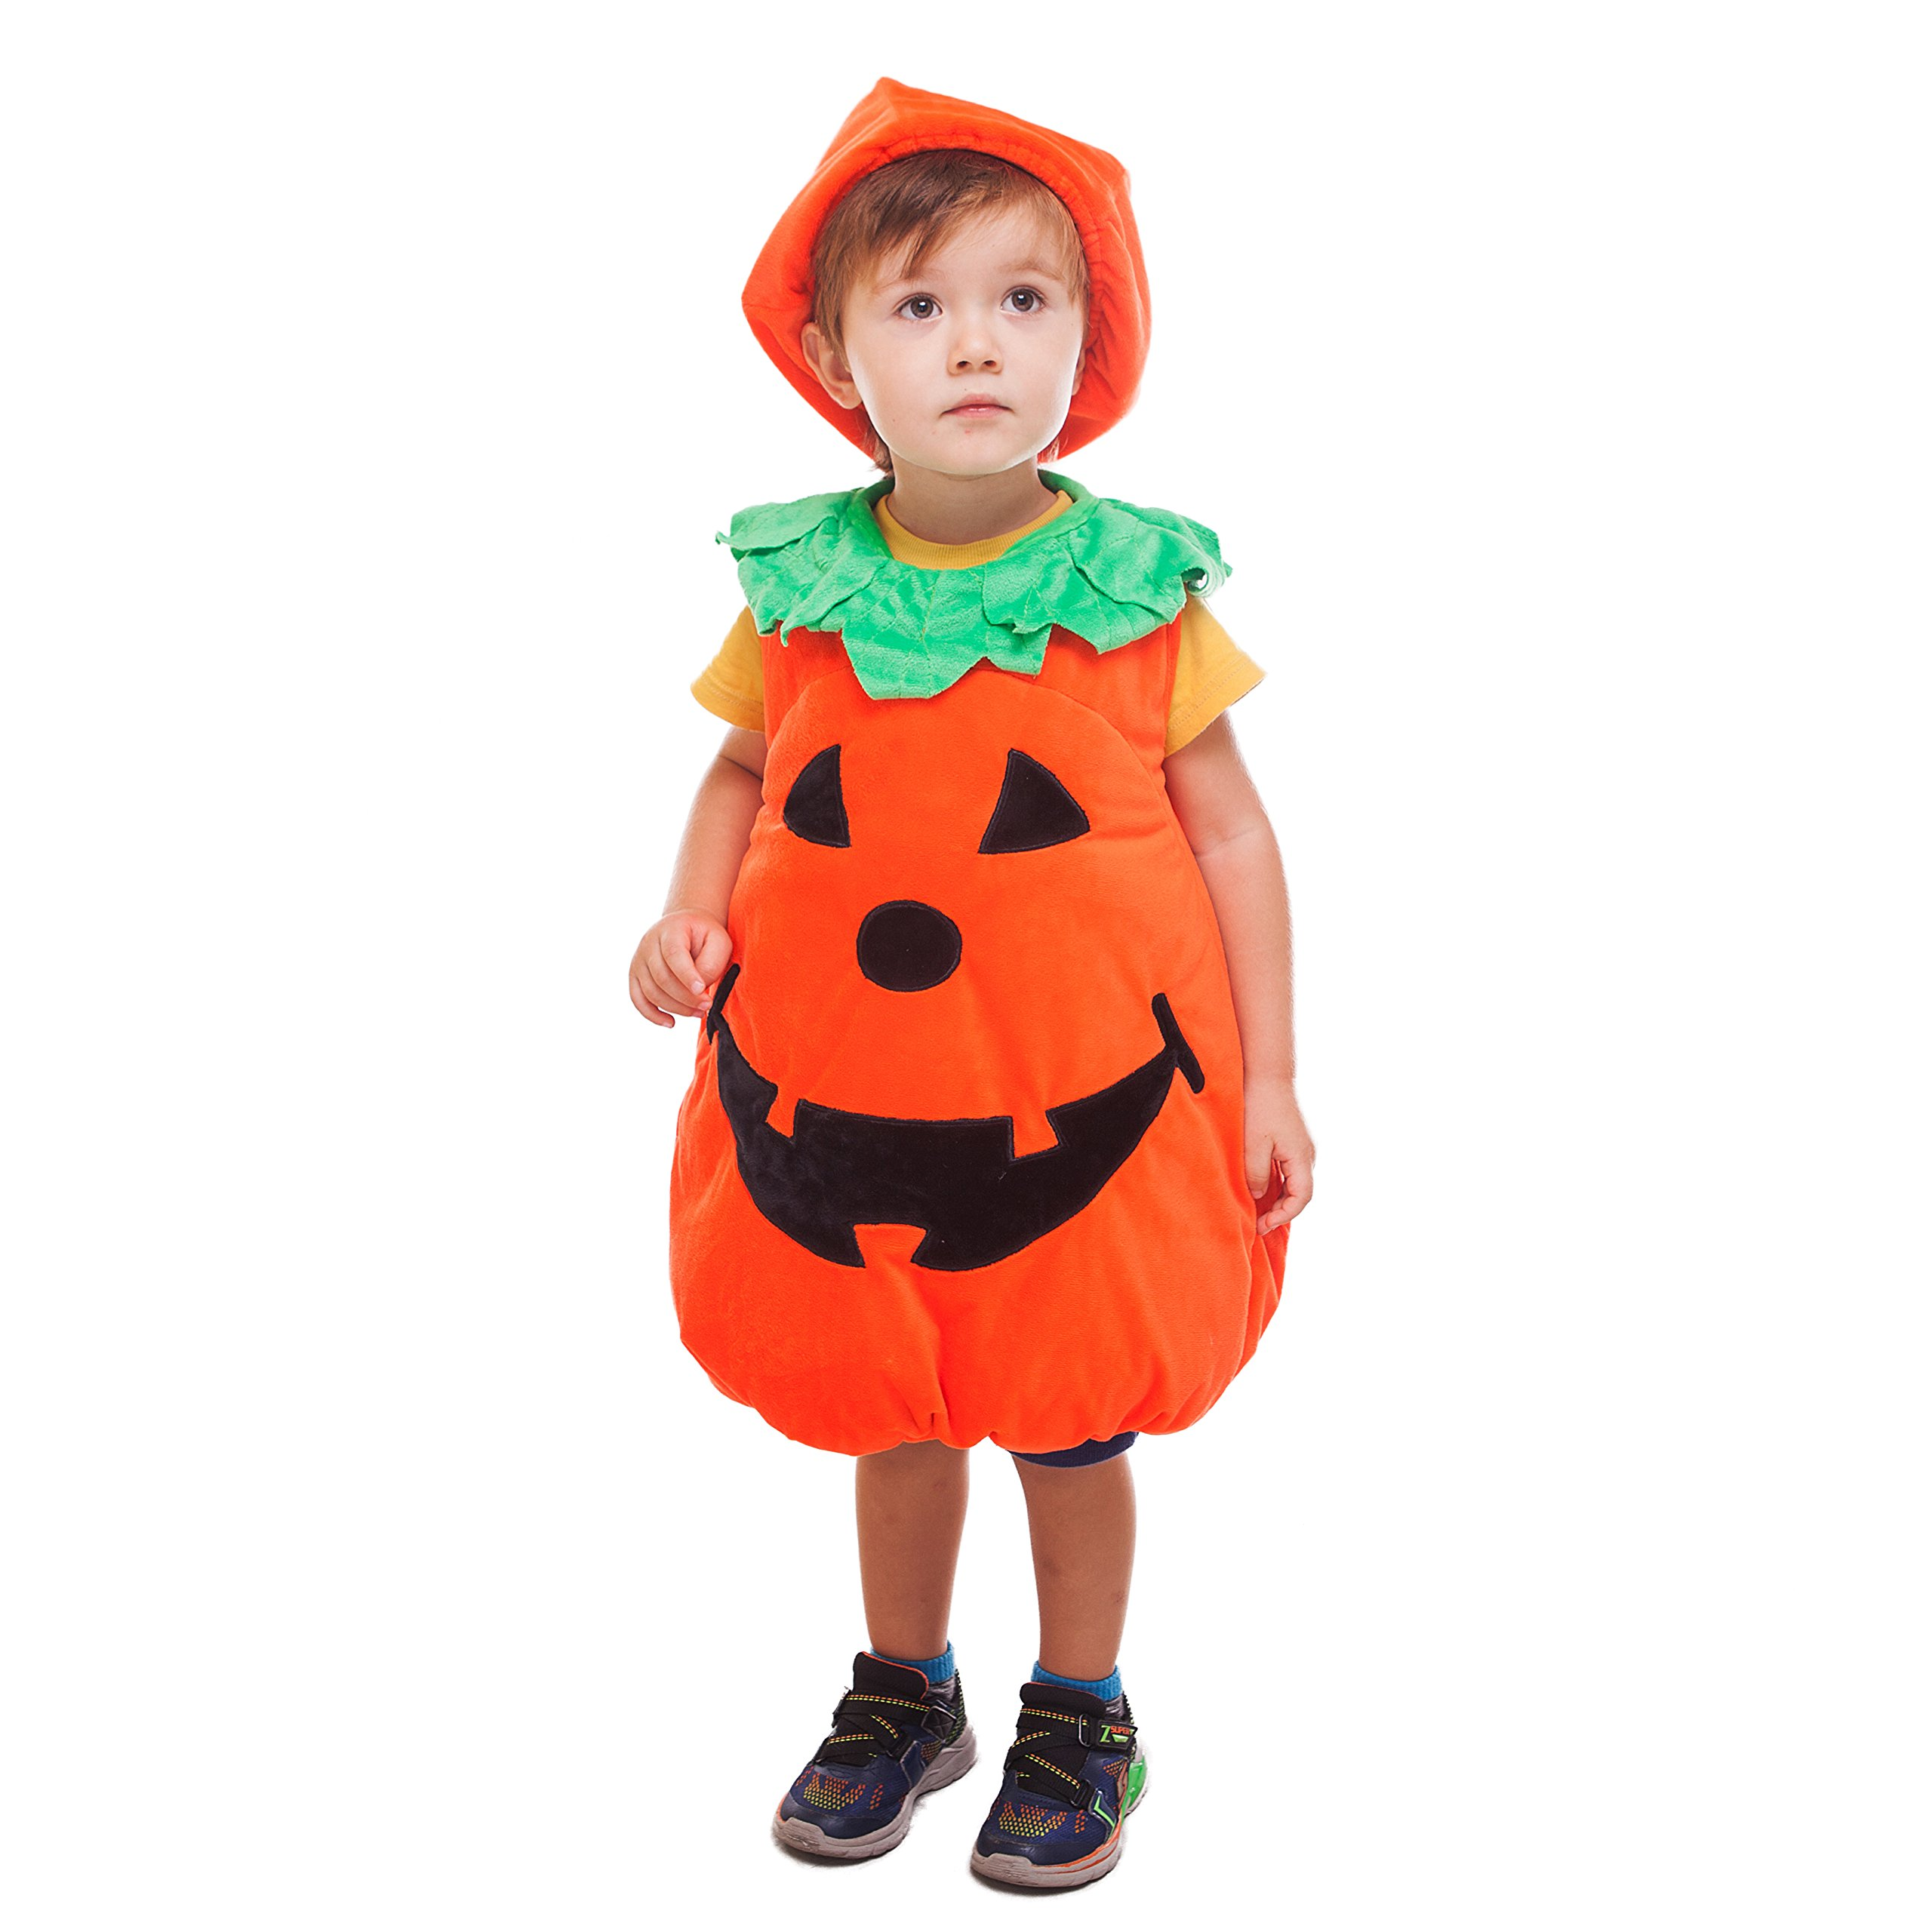 WEWILL Halloween Orange Pumpkin Patch Cutie Unisex Costume Set for Party Children Clothing Fancy Dress Up 5-6year